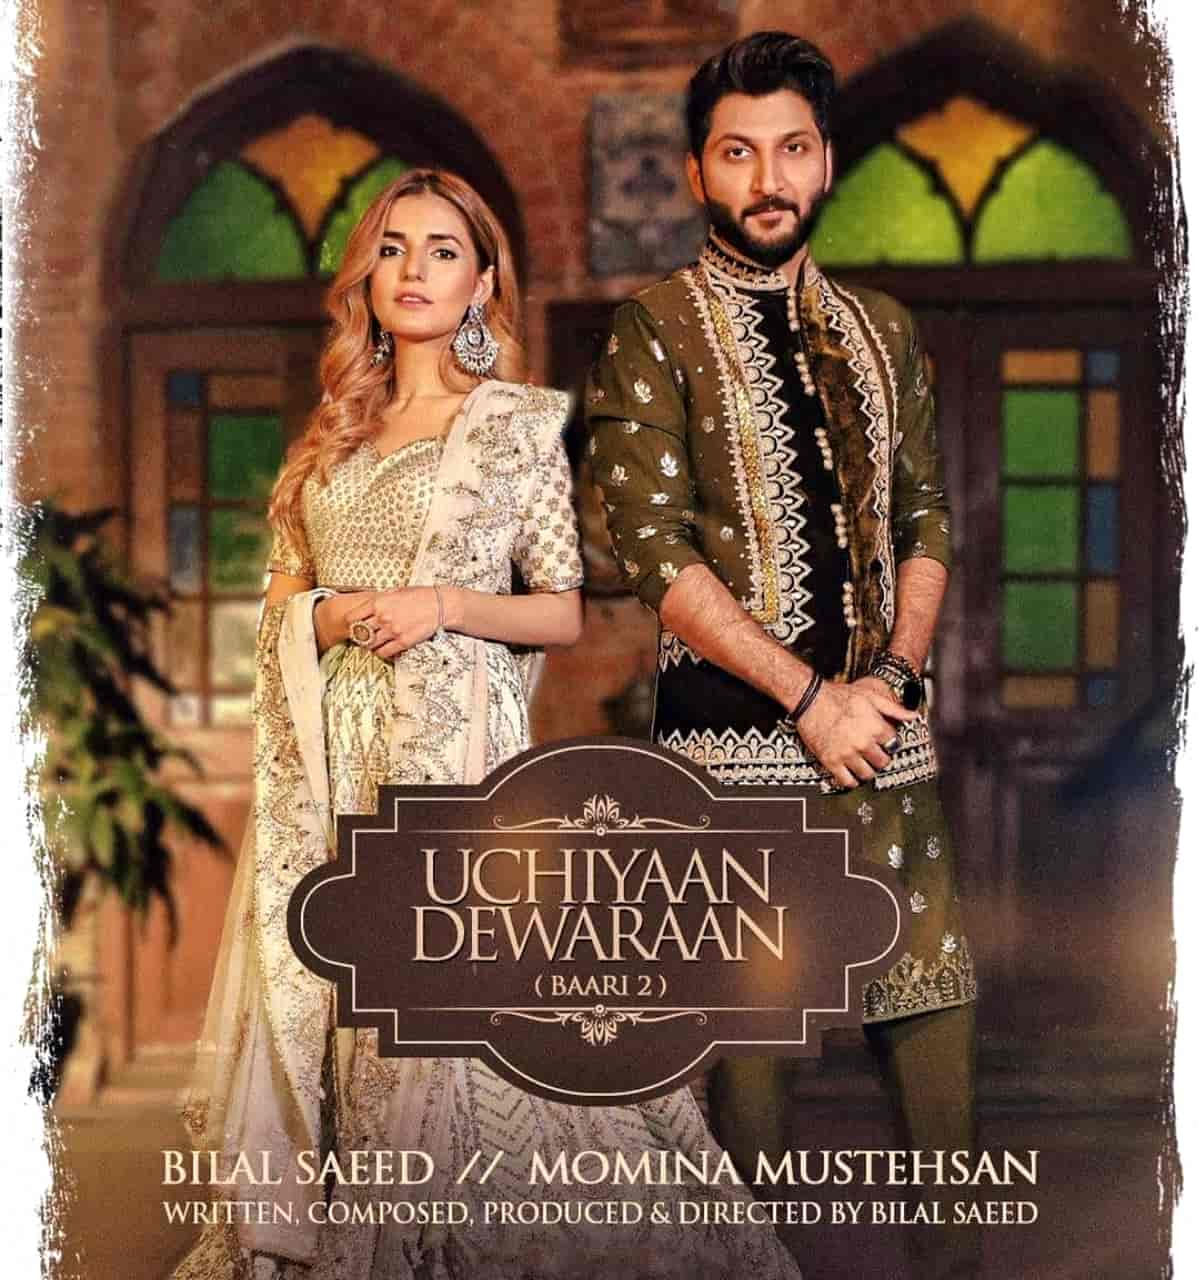 Uchiyaan Dewaraan Punjabi Song Image Features Bilal Saeed and Momina Mustehsan